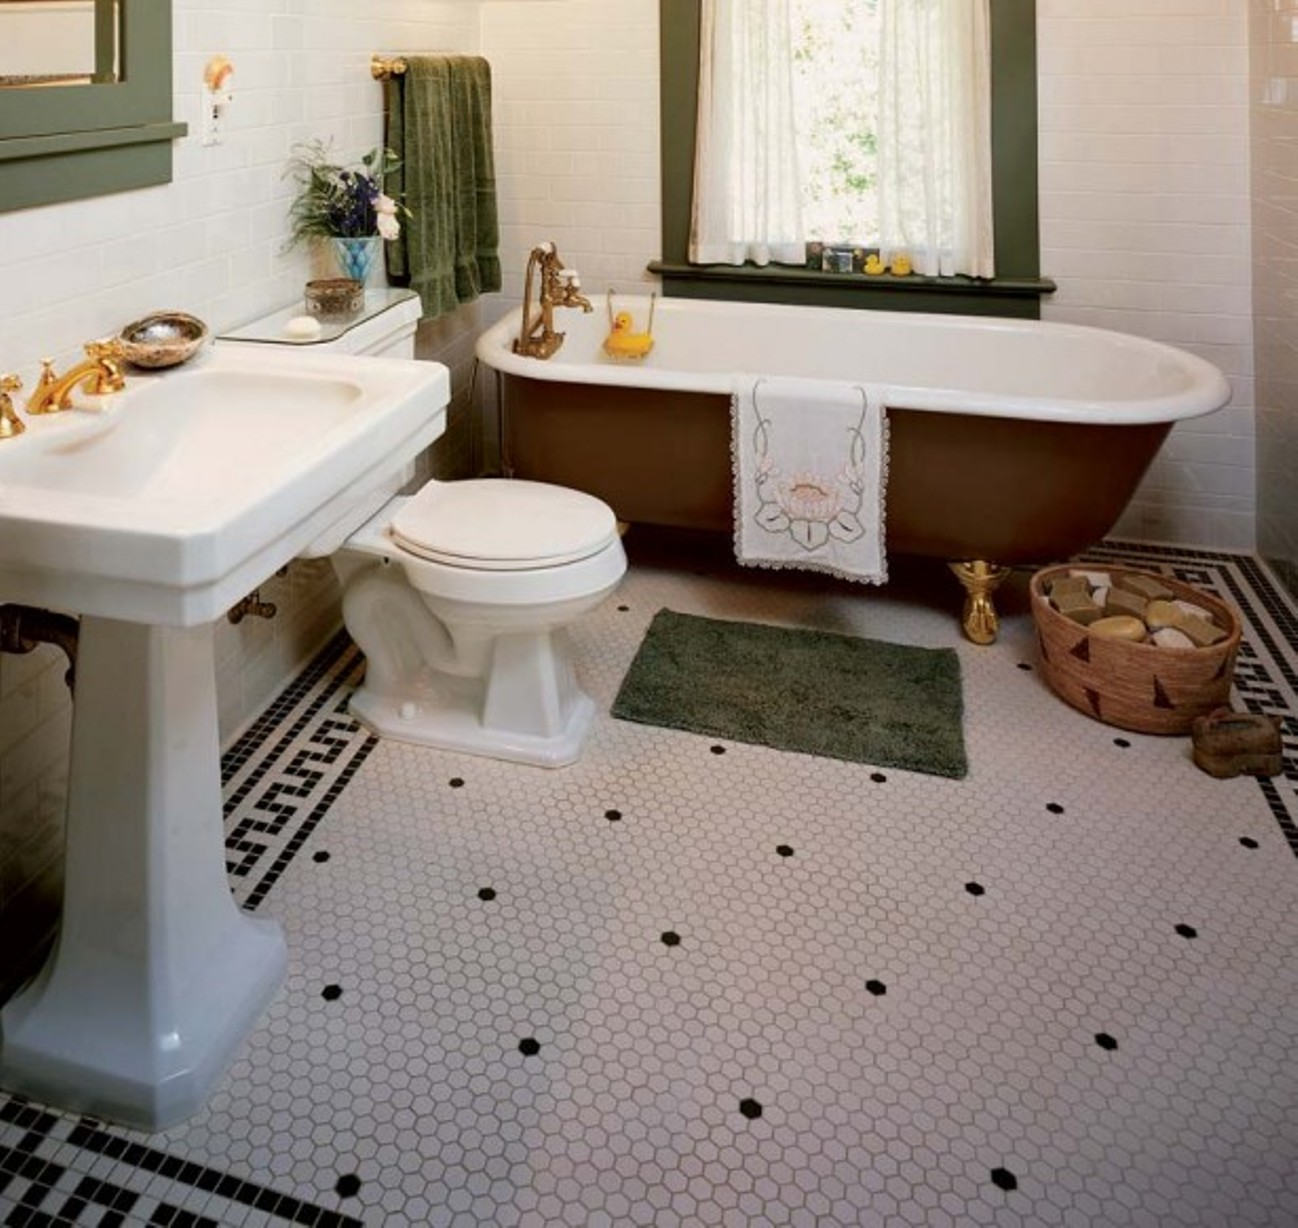 30 ideas on using hex tiles for bathroom floors Unique floor tile designs